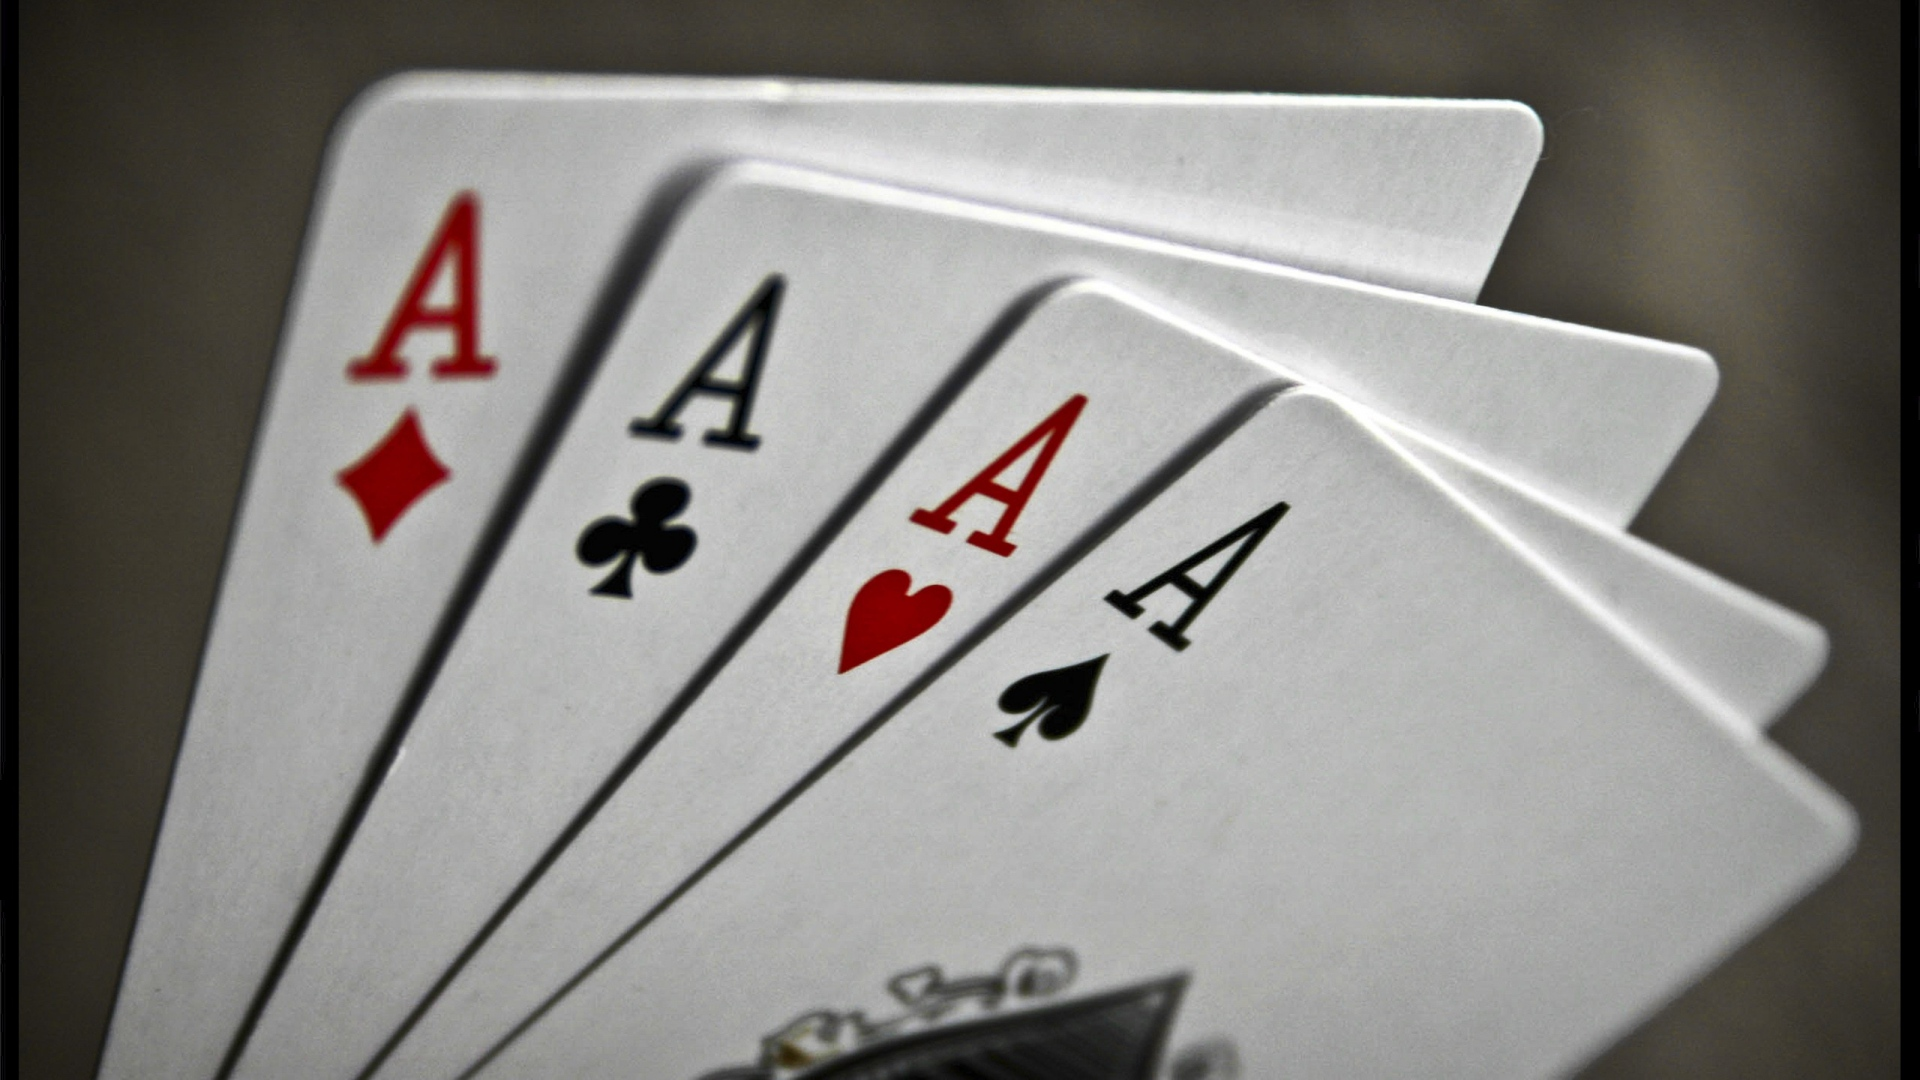 download wallpaper 1920x1080 cards ace poker game full